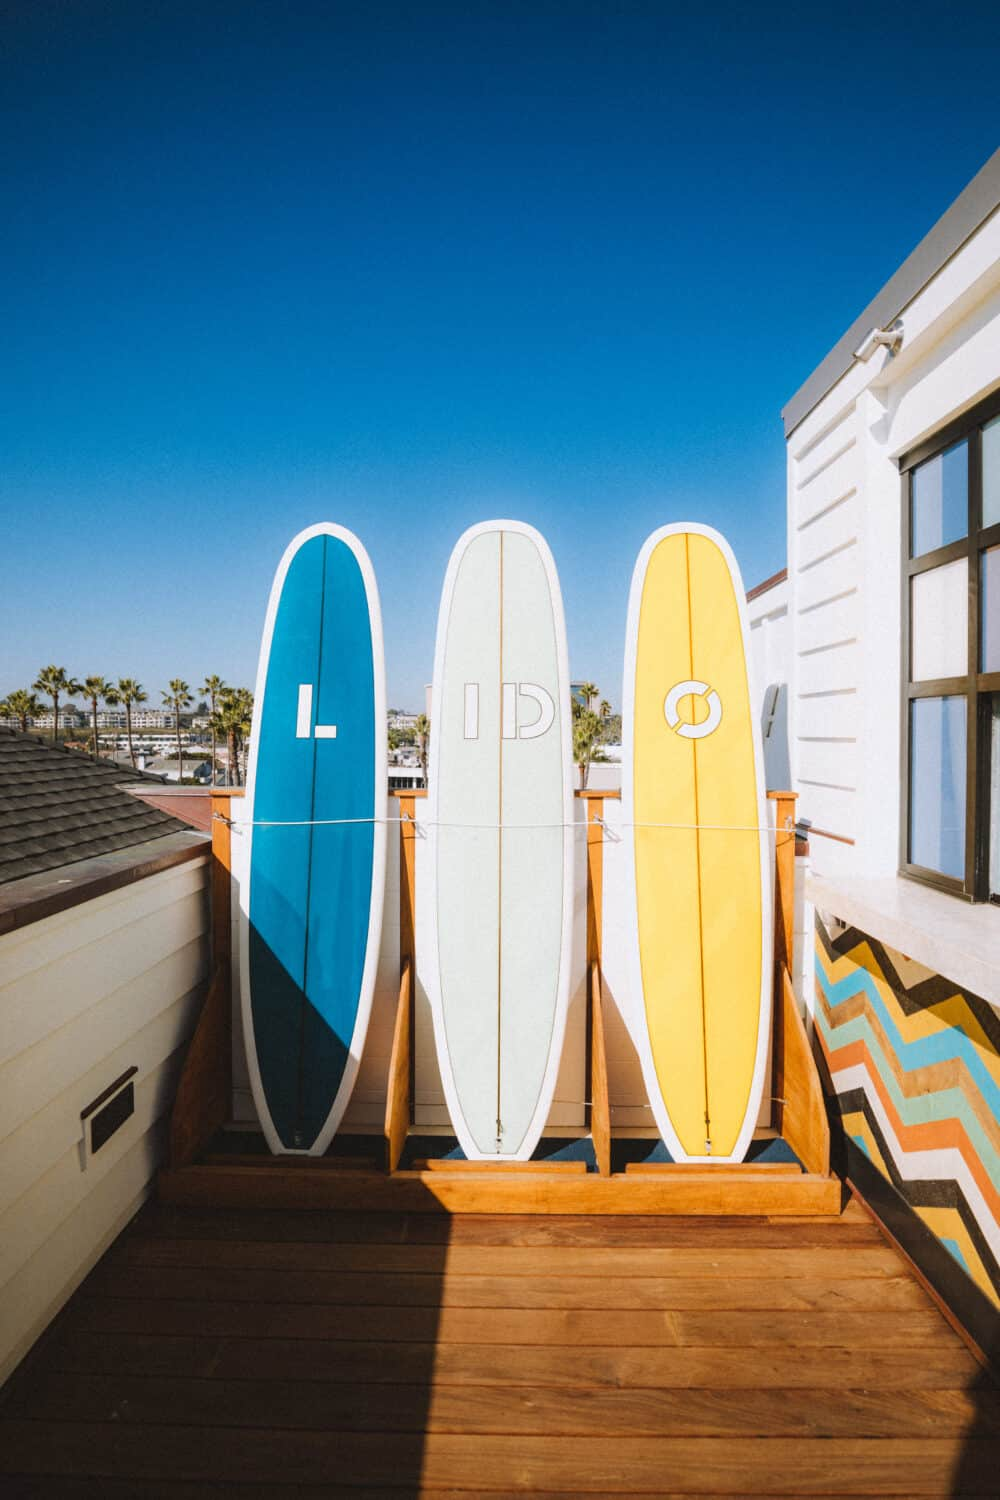 Lido House Hotel Rooftop Surfboards - Newport Beach - TheMandagies.com